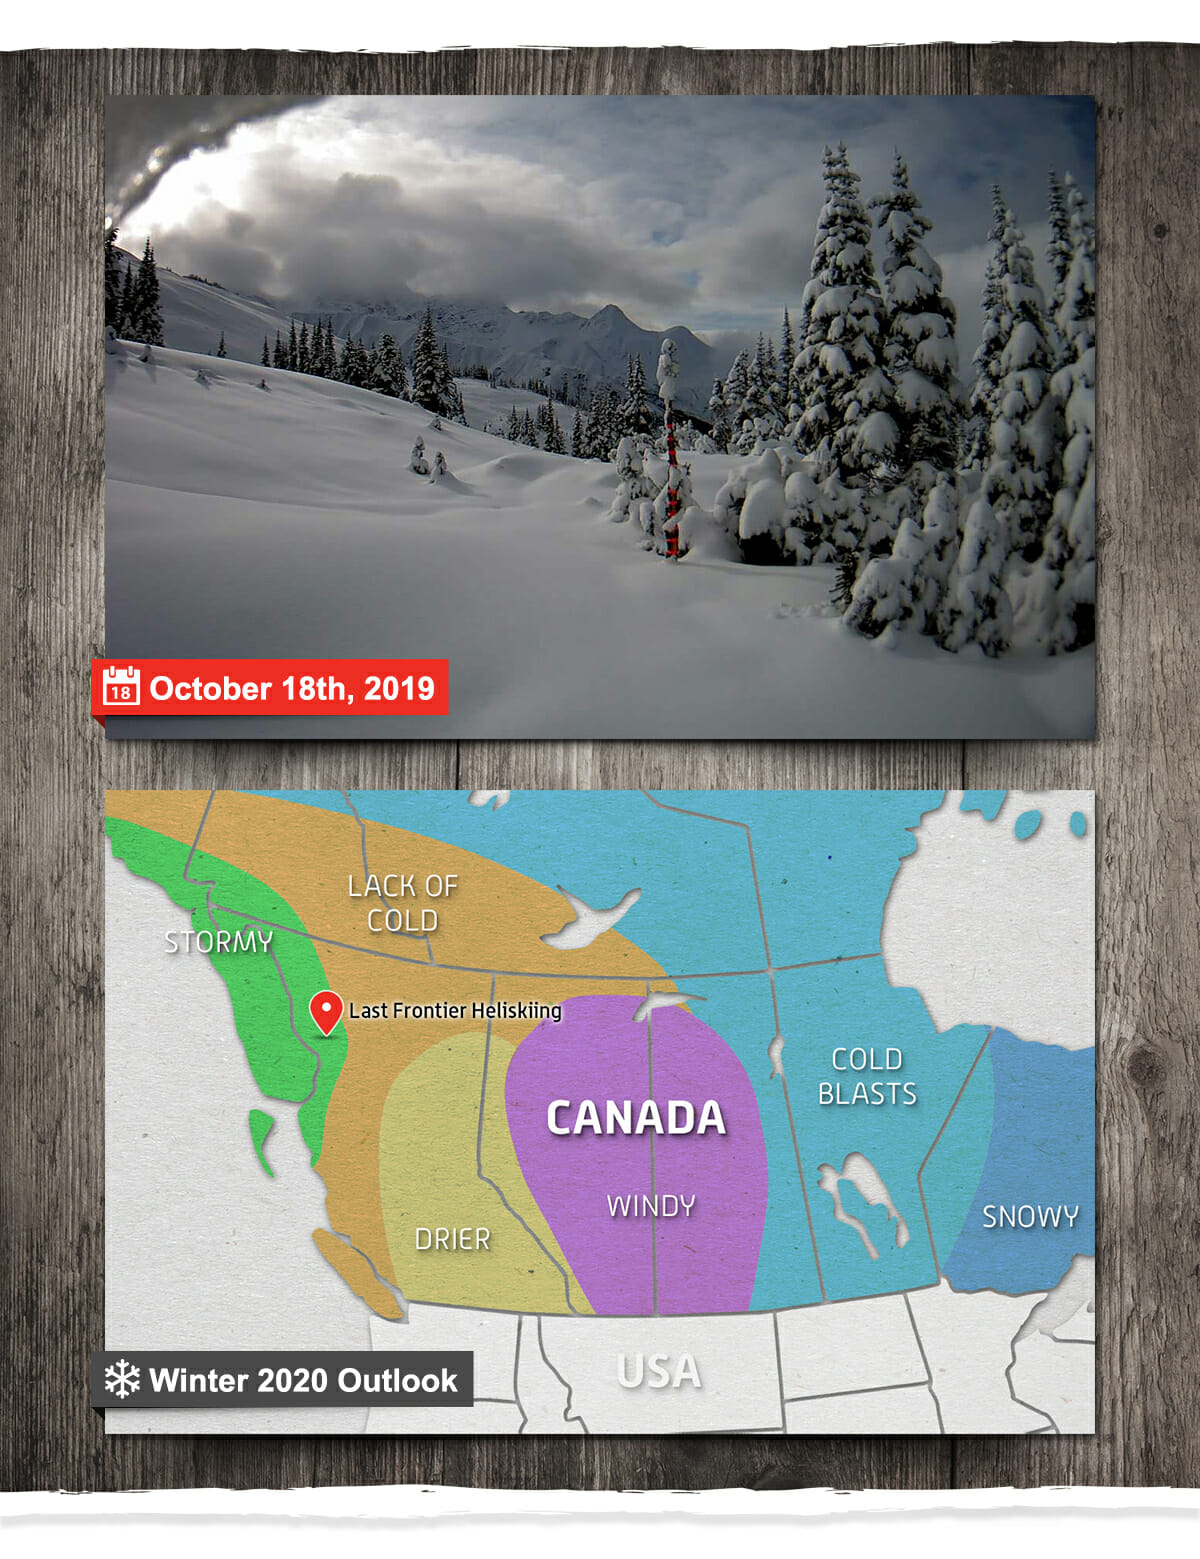 Winter 2020 heli skiing forecast